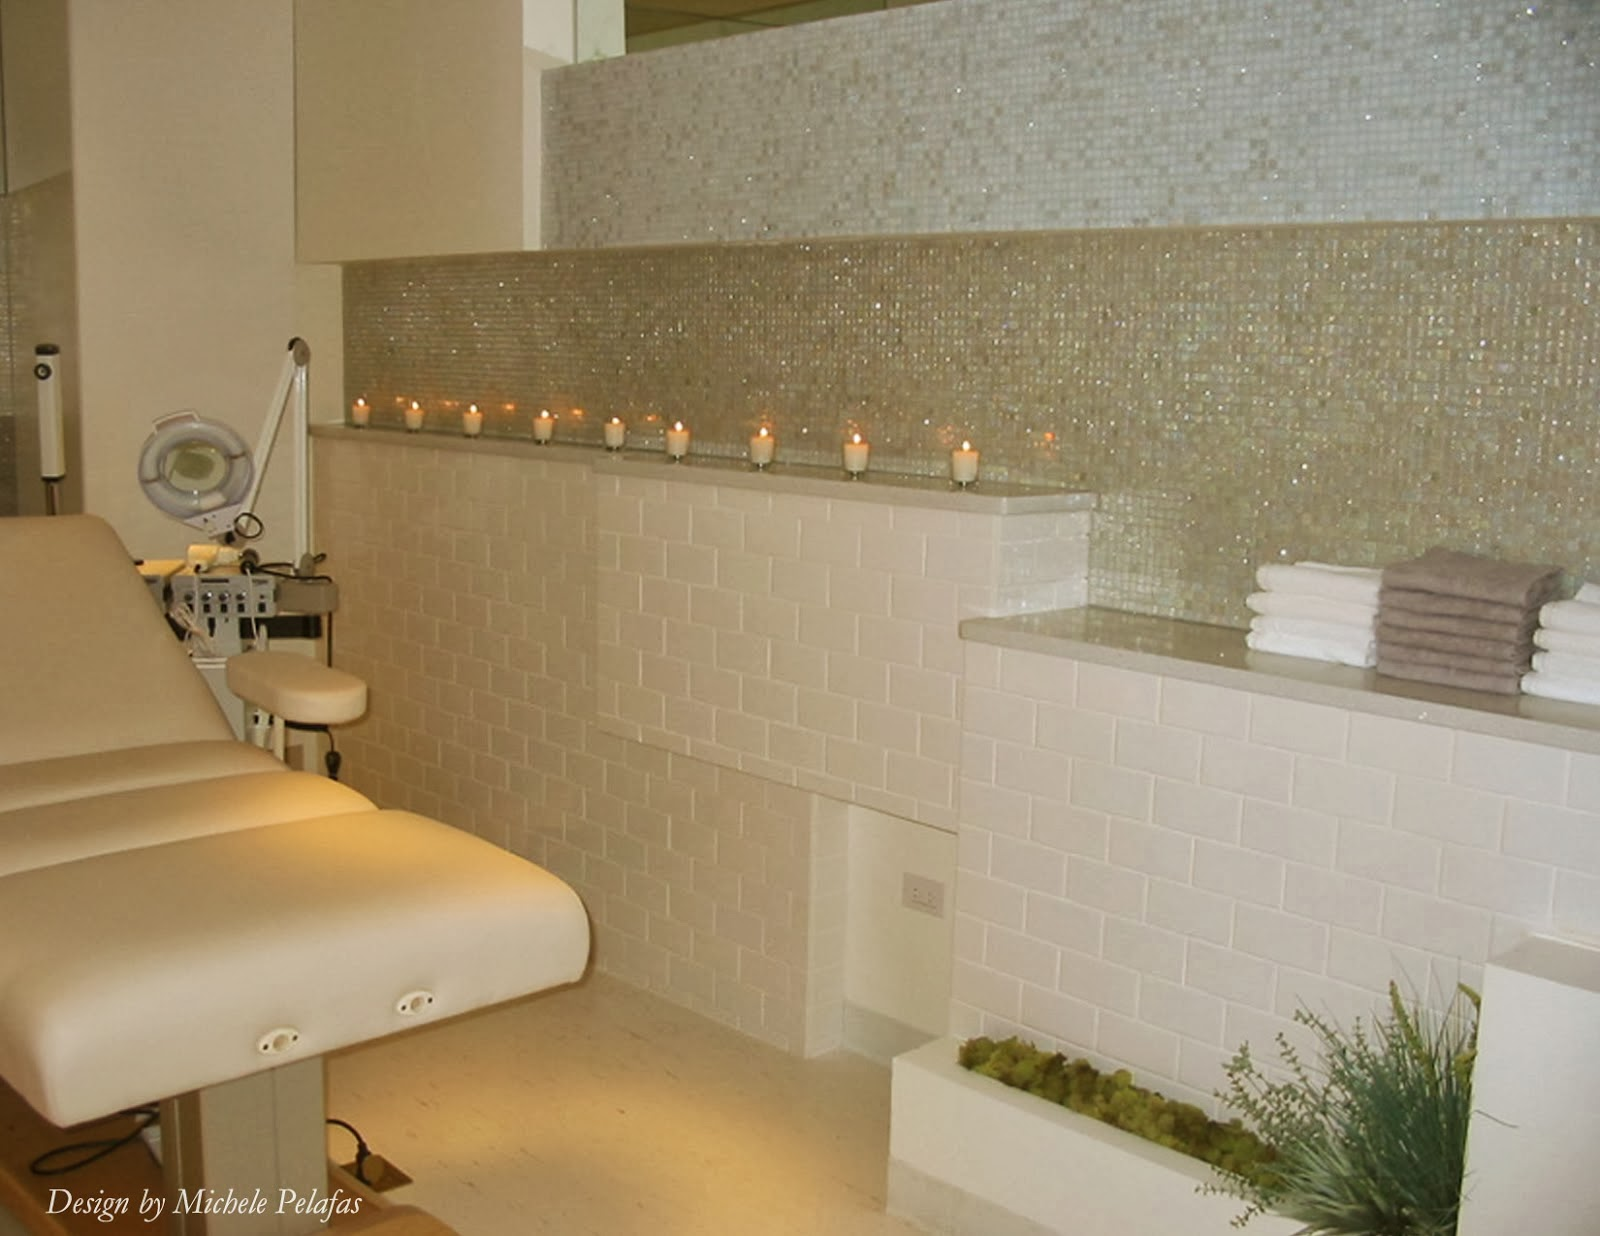 our team of spa designers consists of the most seasoned artistic and technically skilled designers in the industry that truly understand spa design - Spa Design Images